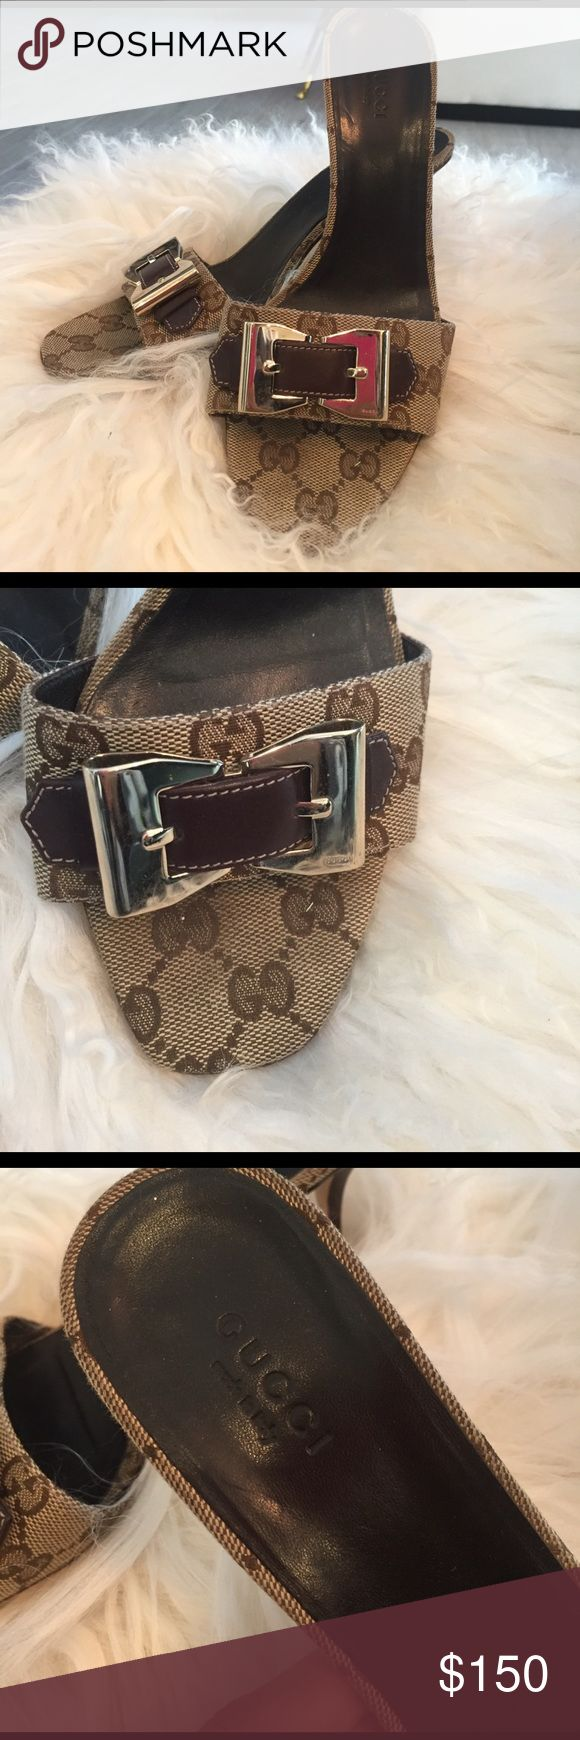 Gucci Heels with Gold Buckle Great heels for a great price! Pretty good condition. The bottom has some wear but nothing visible. Gold buckle with brown leather strap across the front. Size 8. The only imperfection on the gold part is pictured (little black dots). Gucci Shoes Heels